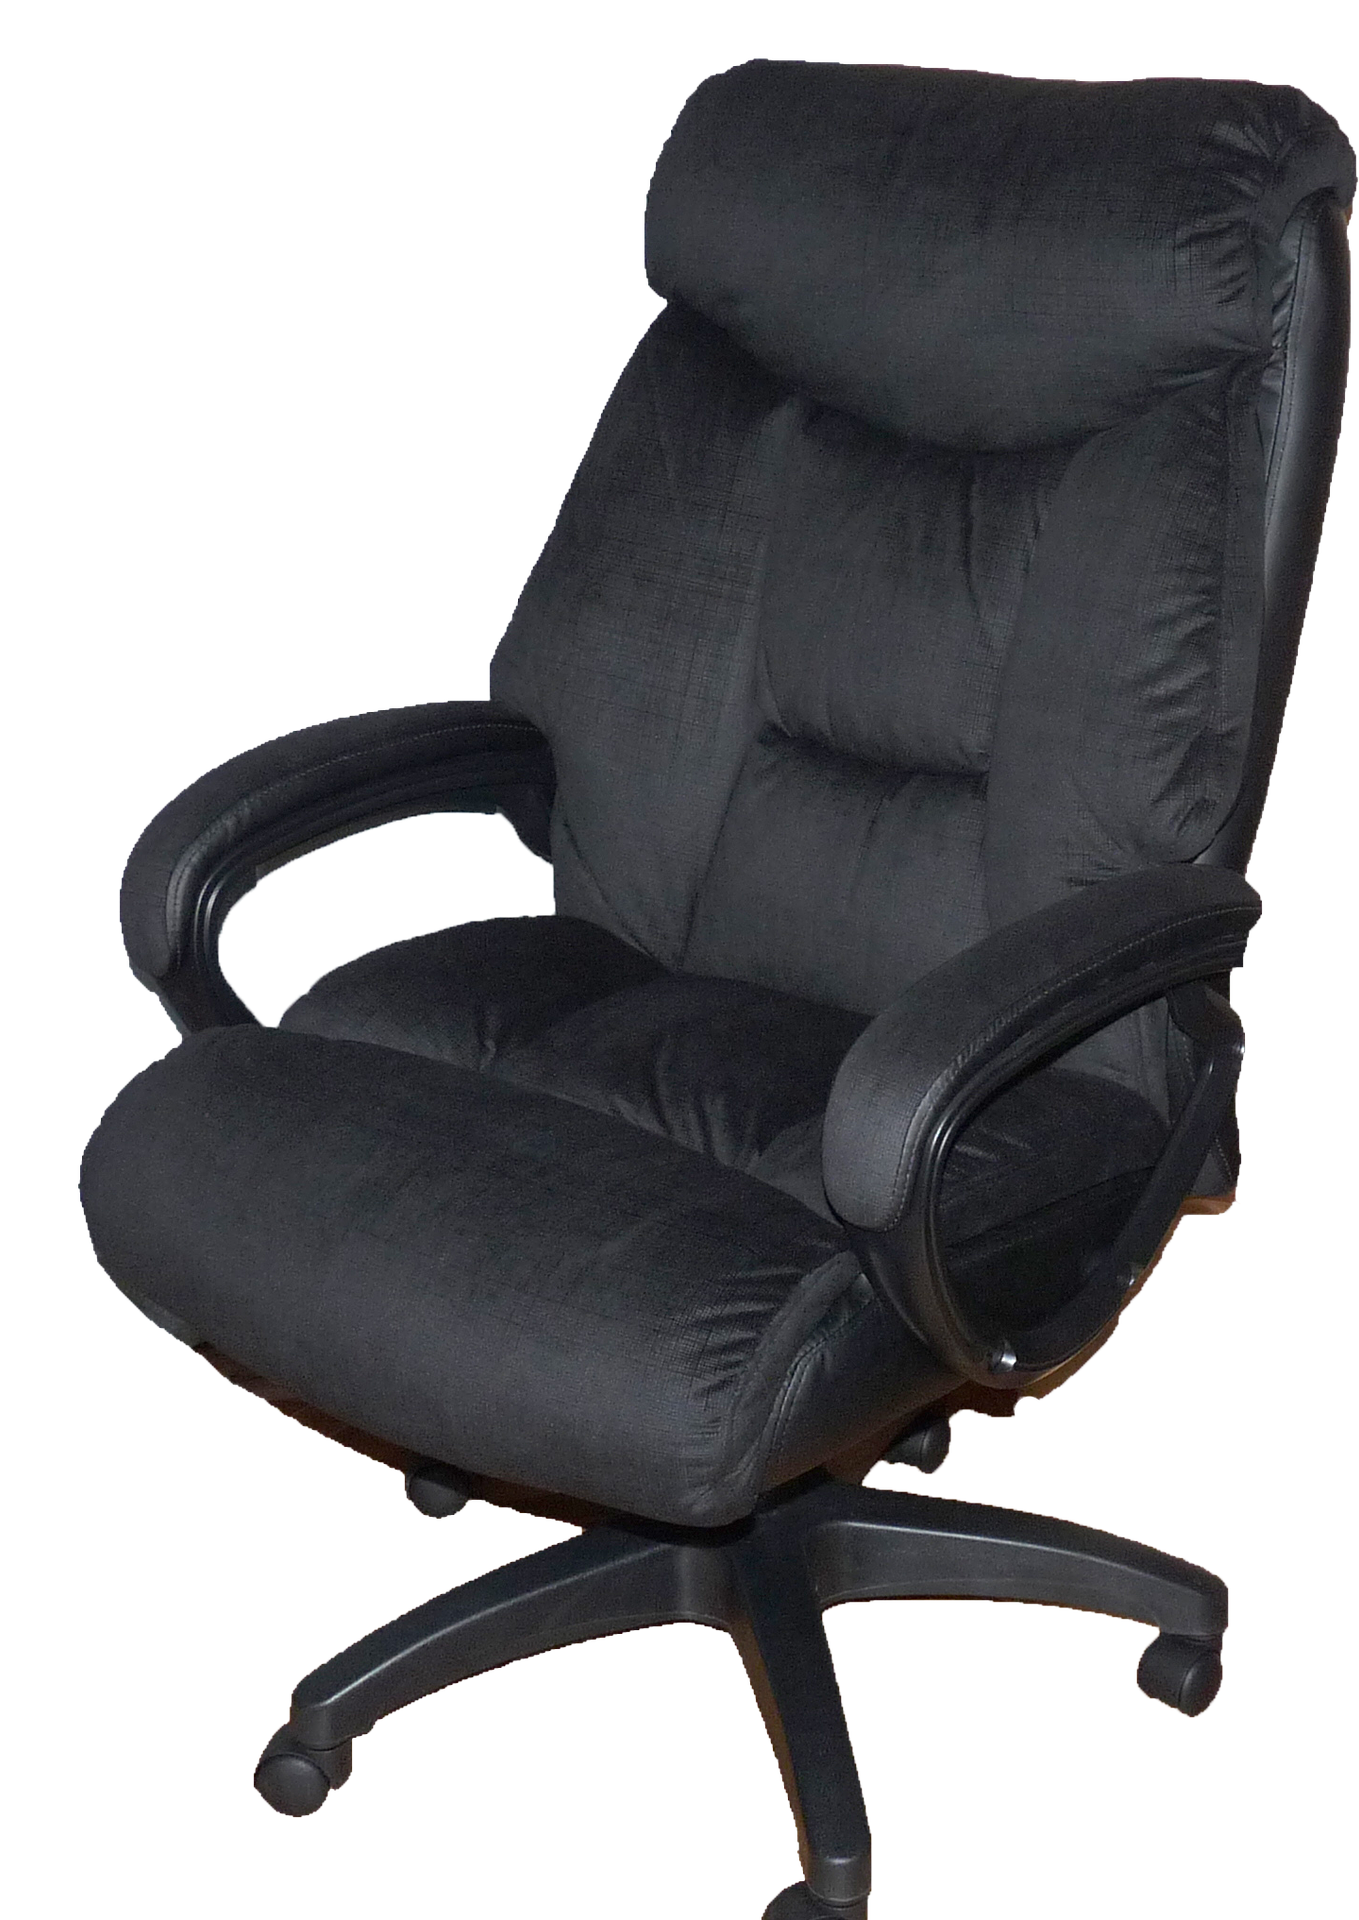 who invented the swivel chair